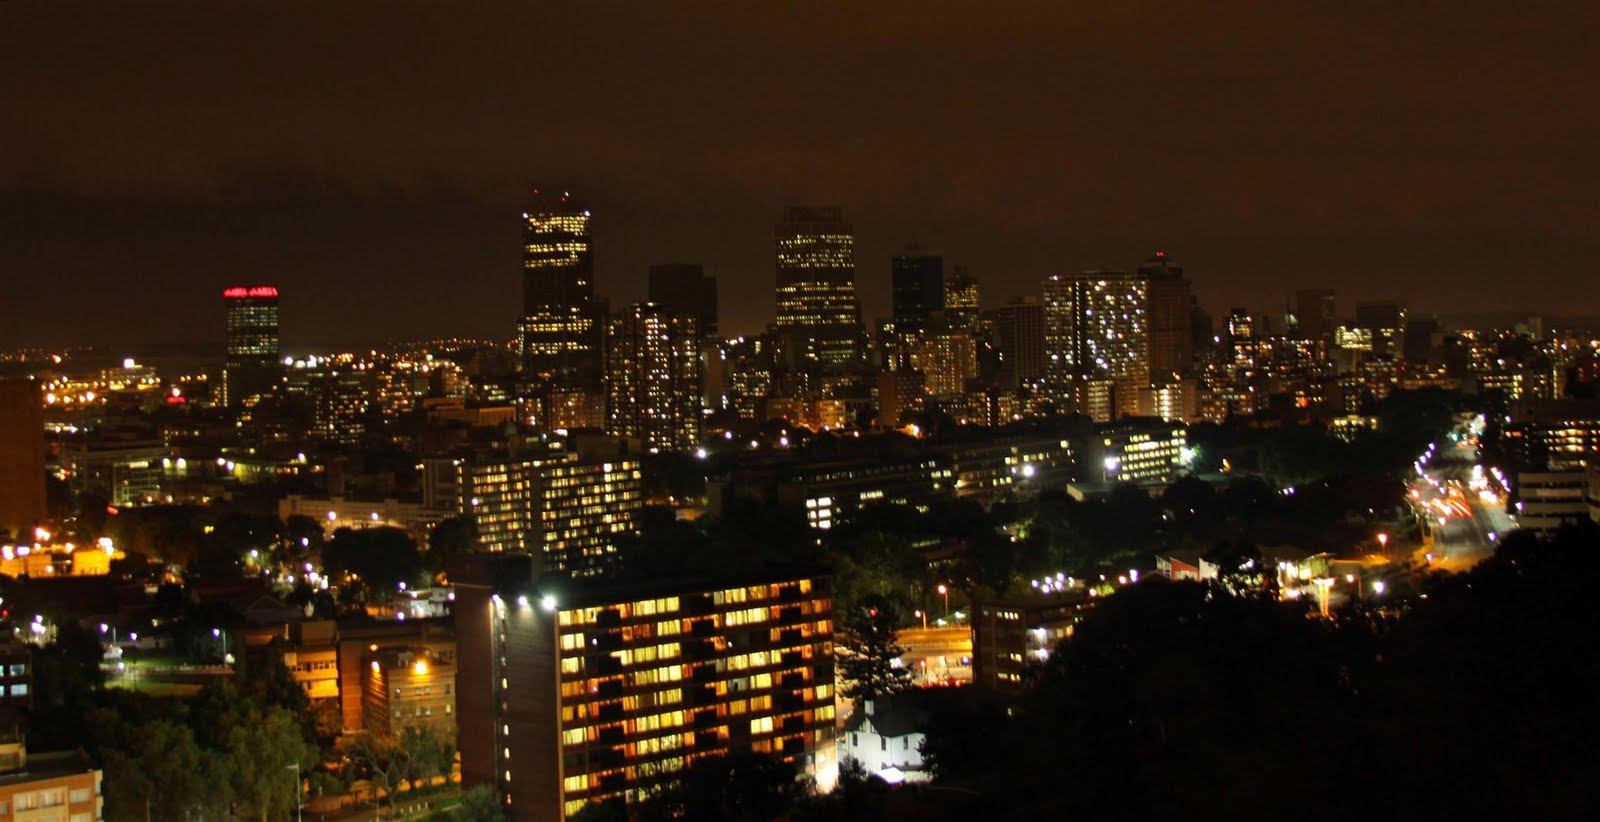 Jozi_at_night (Large).jpg